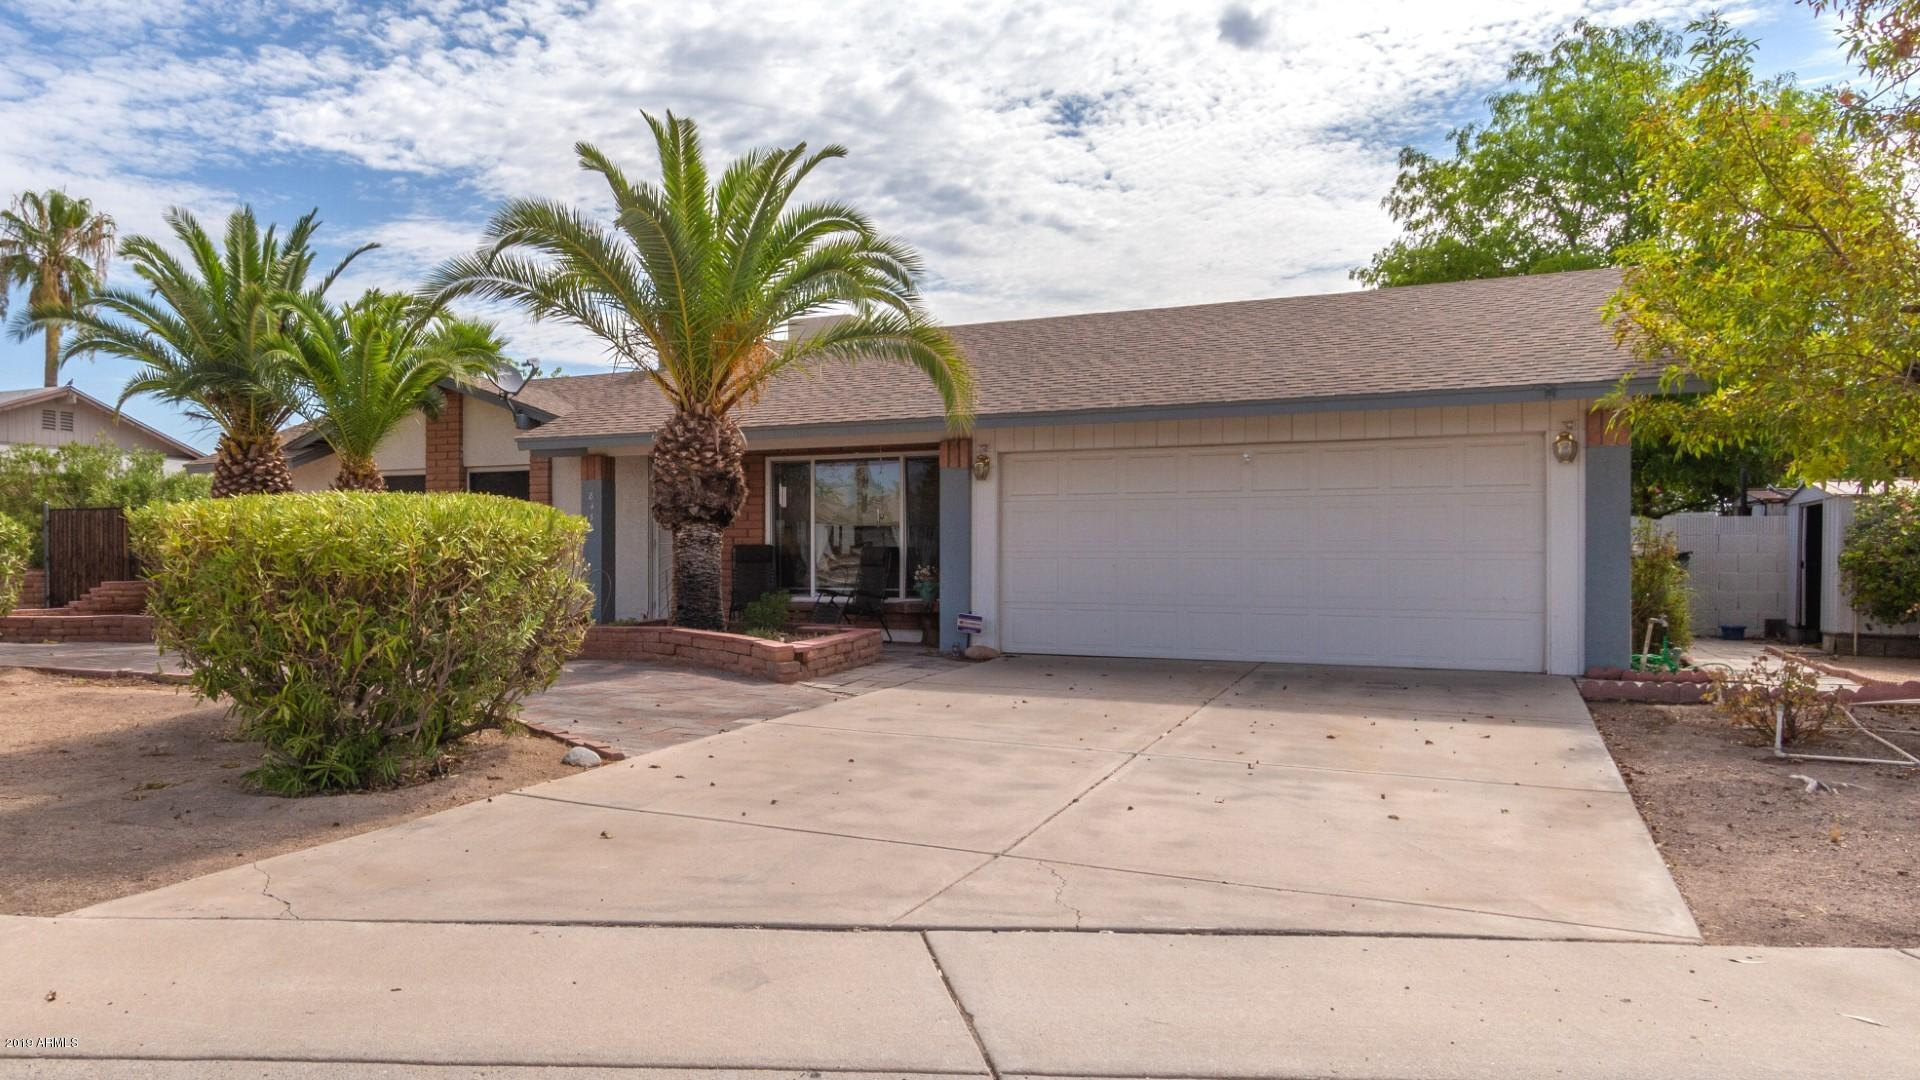 Homes With Rv Parking For Sale In Peoria Arizona Phoenix West